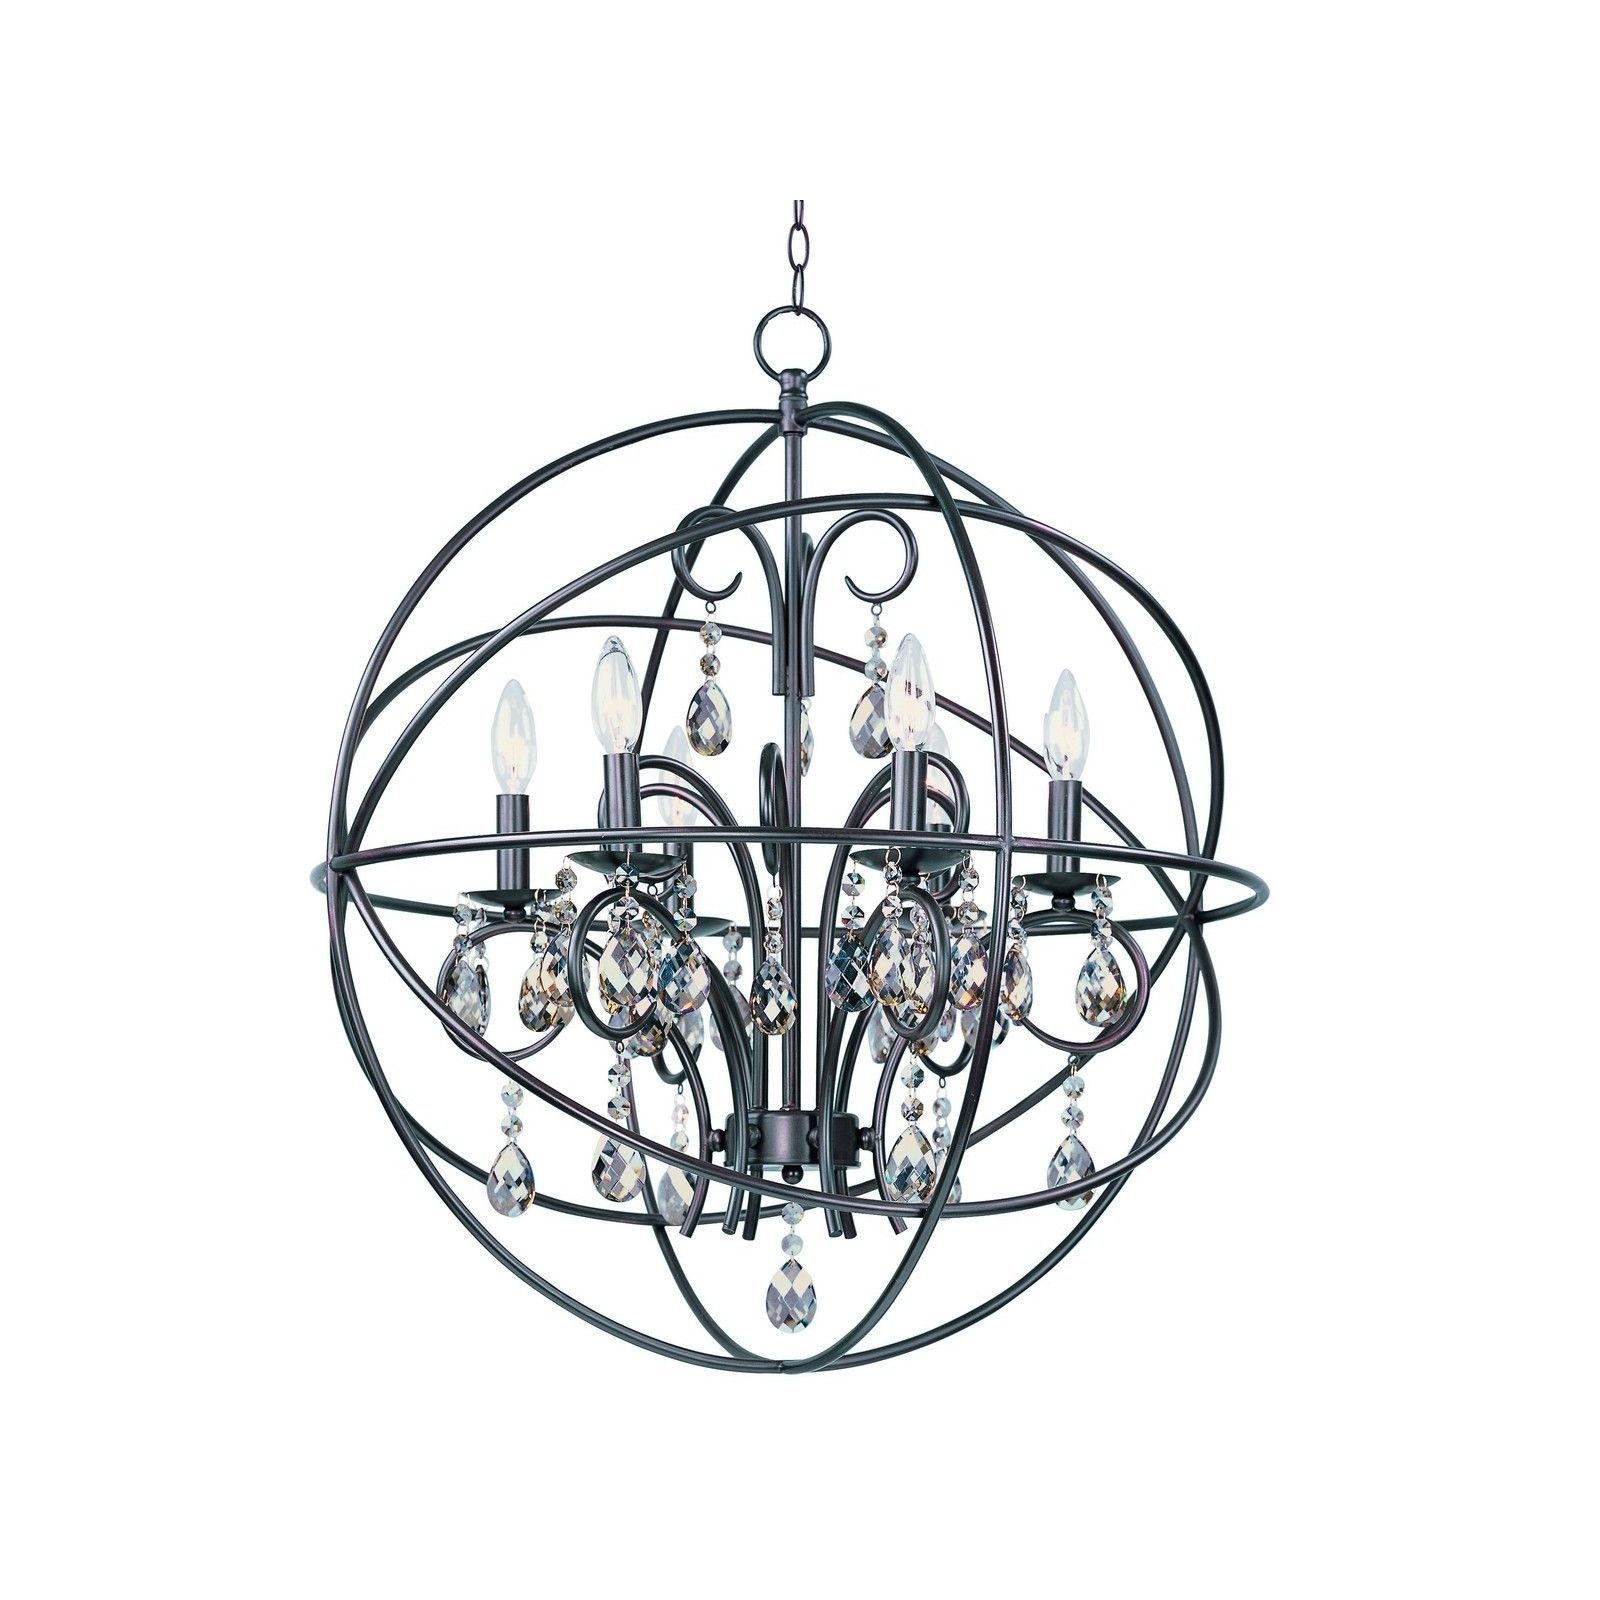 This lovely light features a bronze finish elegant metal this lovely light features a bronze finish elegant metal construction highlights this durable fixture arubaitofo Images